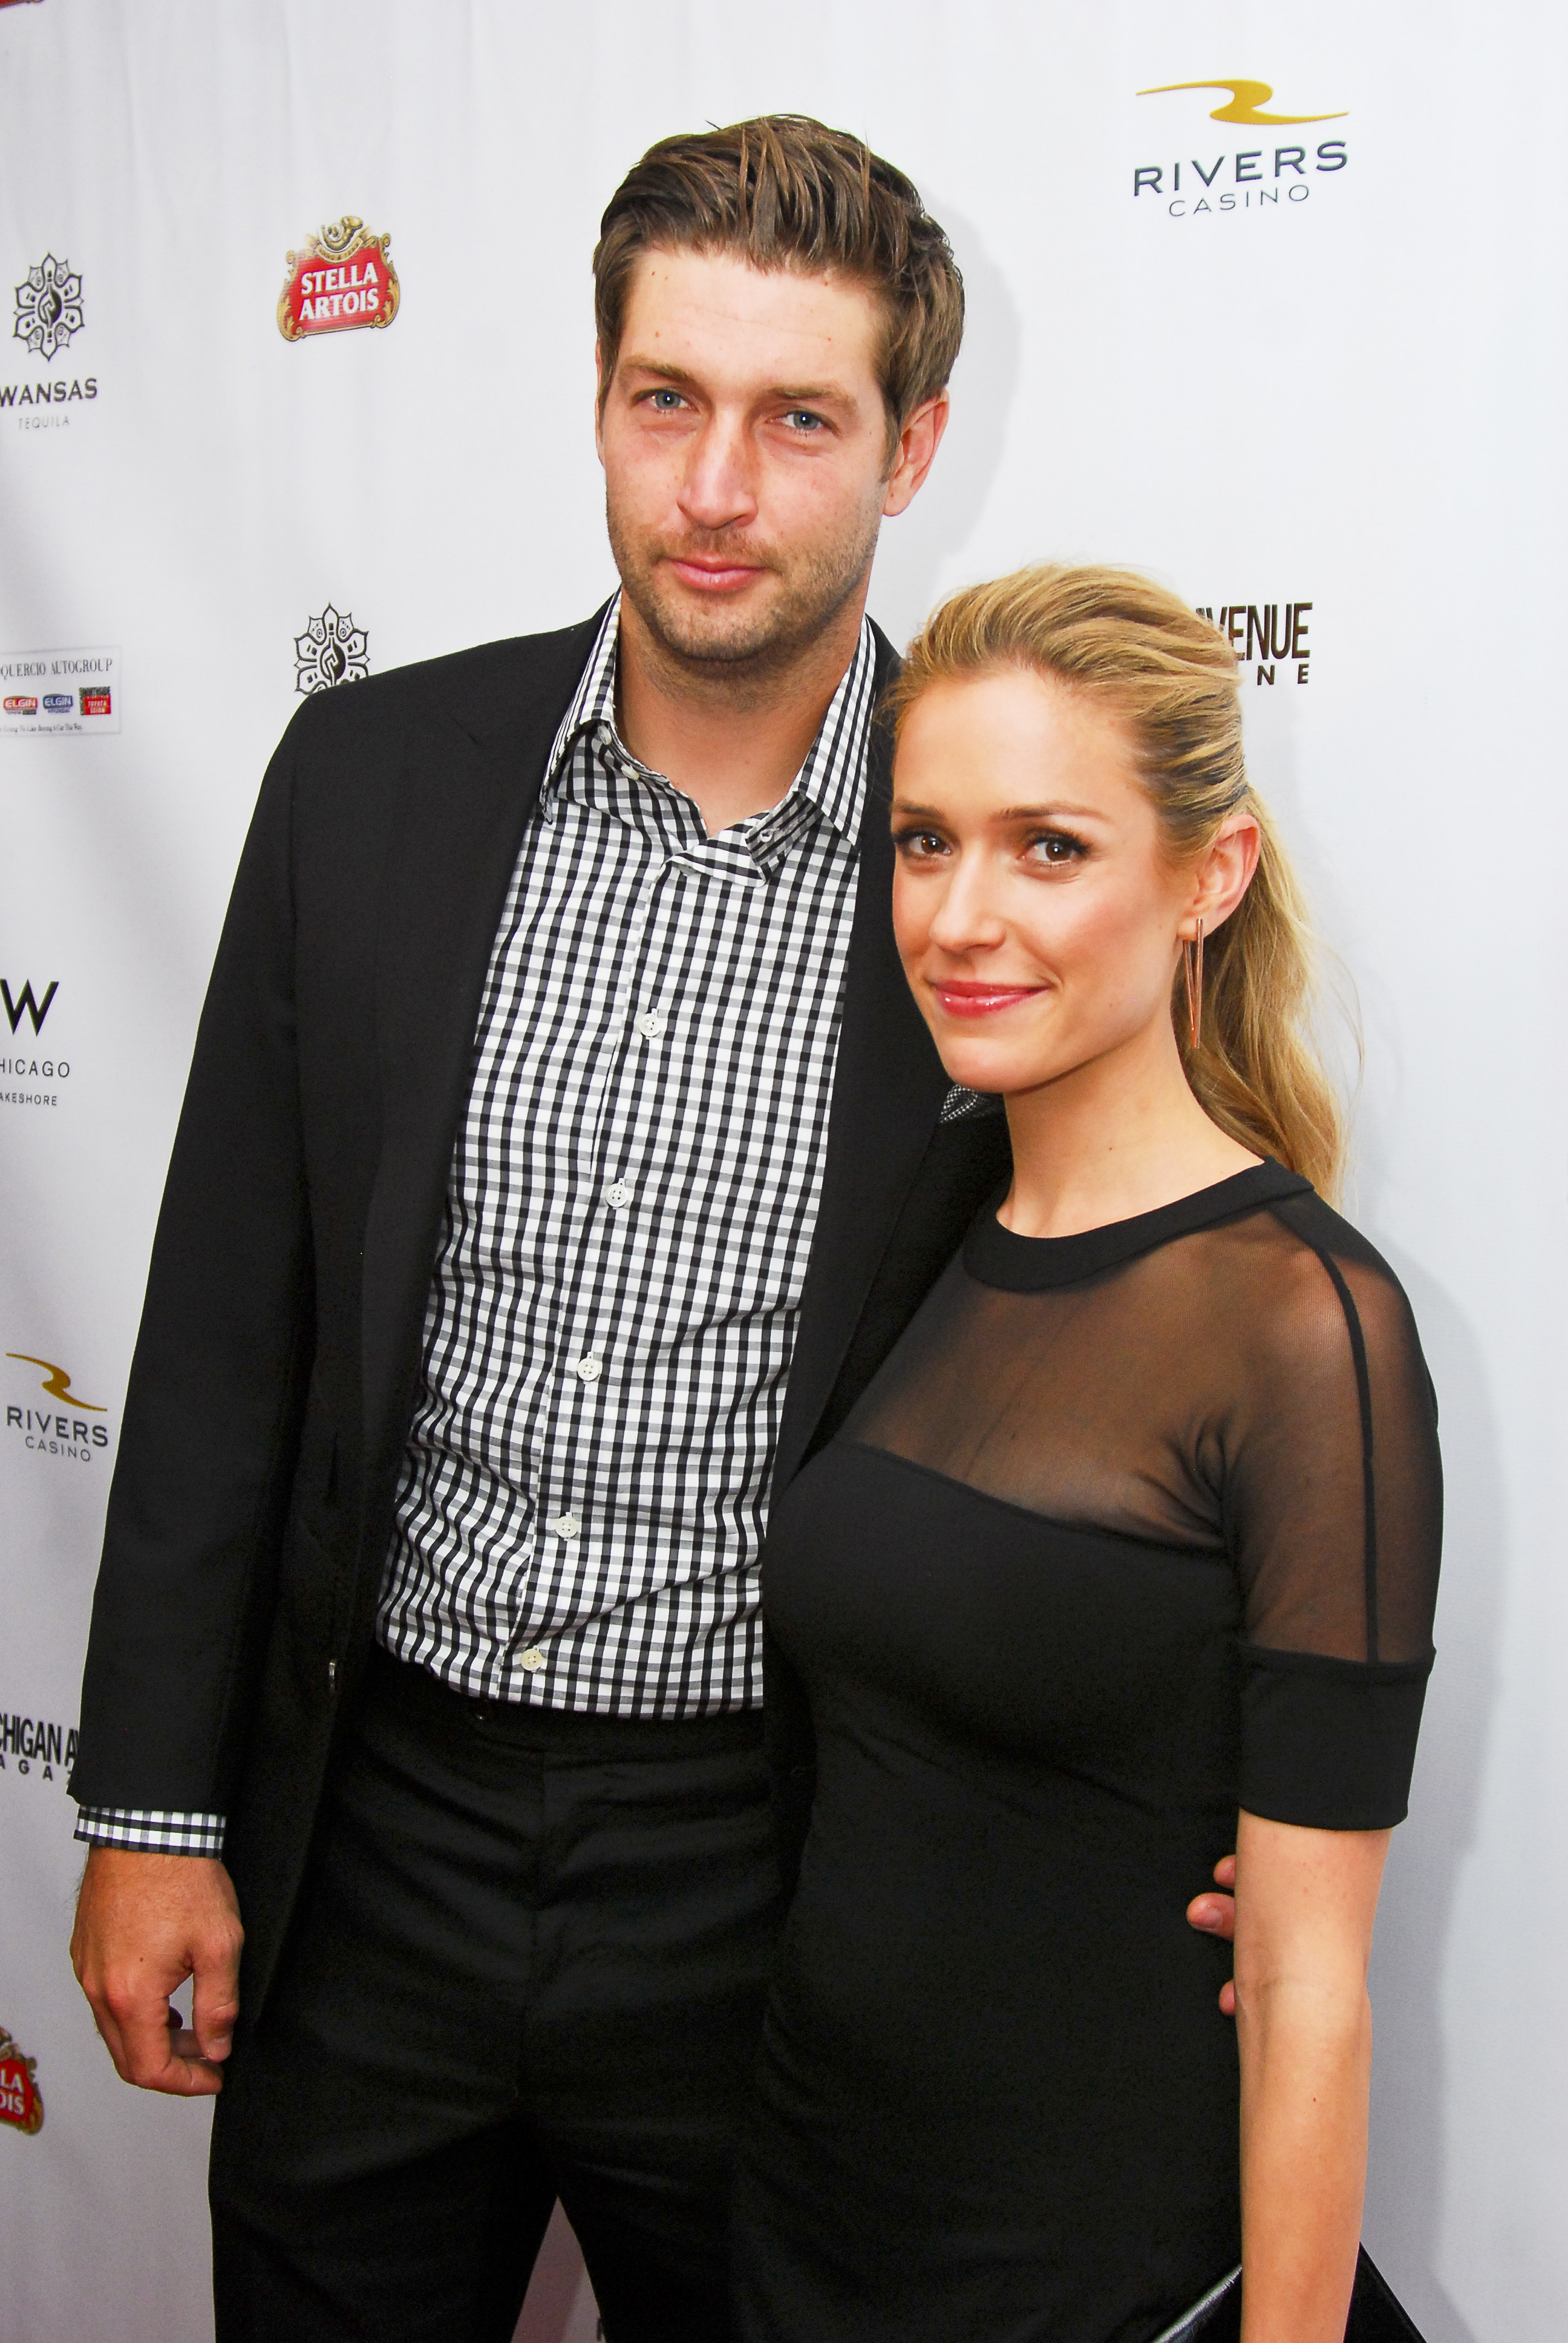 Why Kristin Cavallari ended her engagement